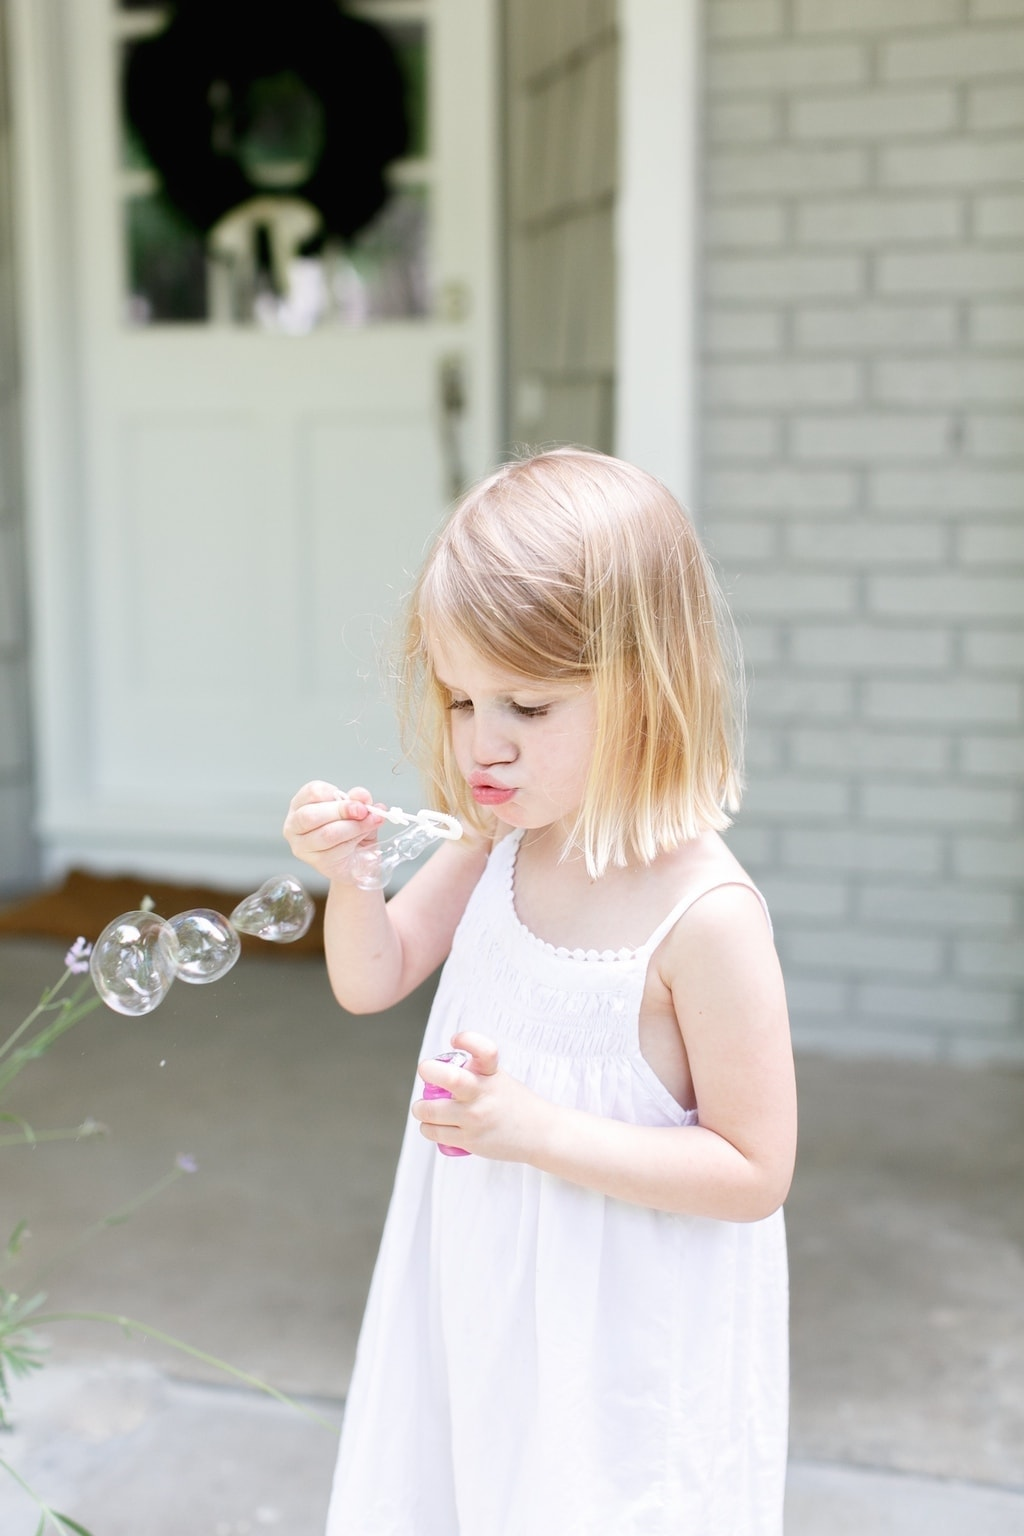 A little girl playing with bubbles